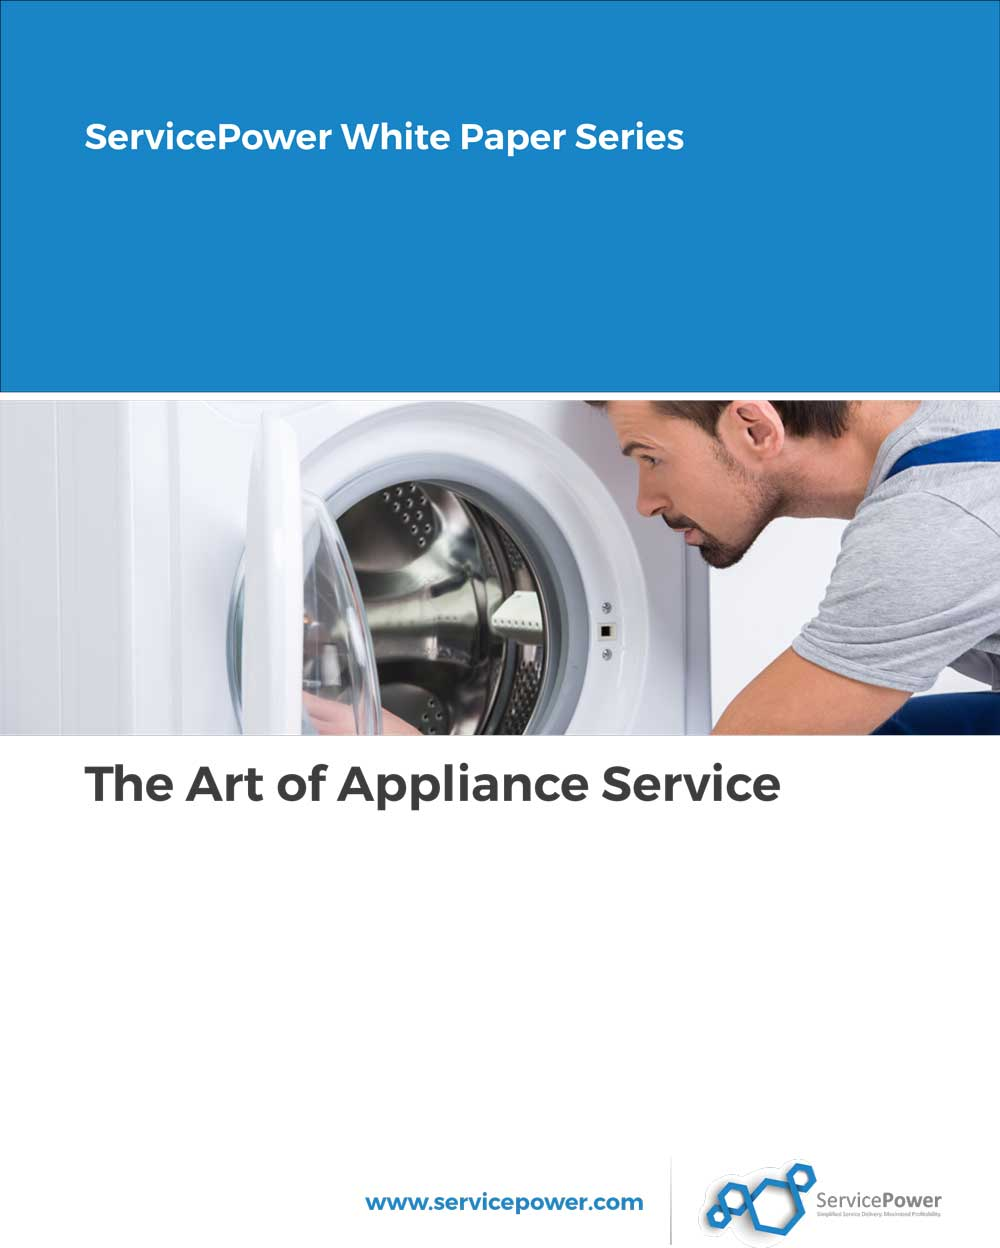 The Art of Applicance Service